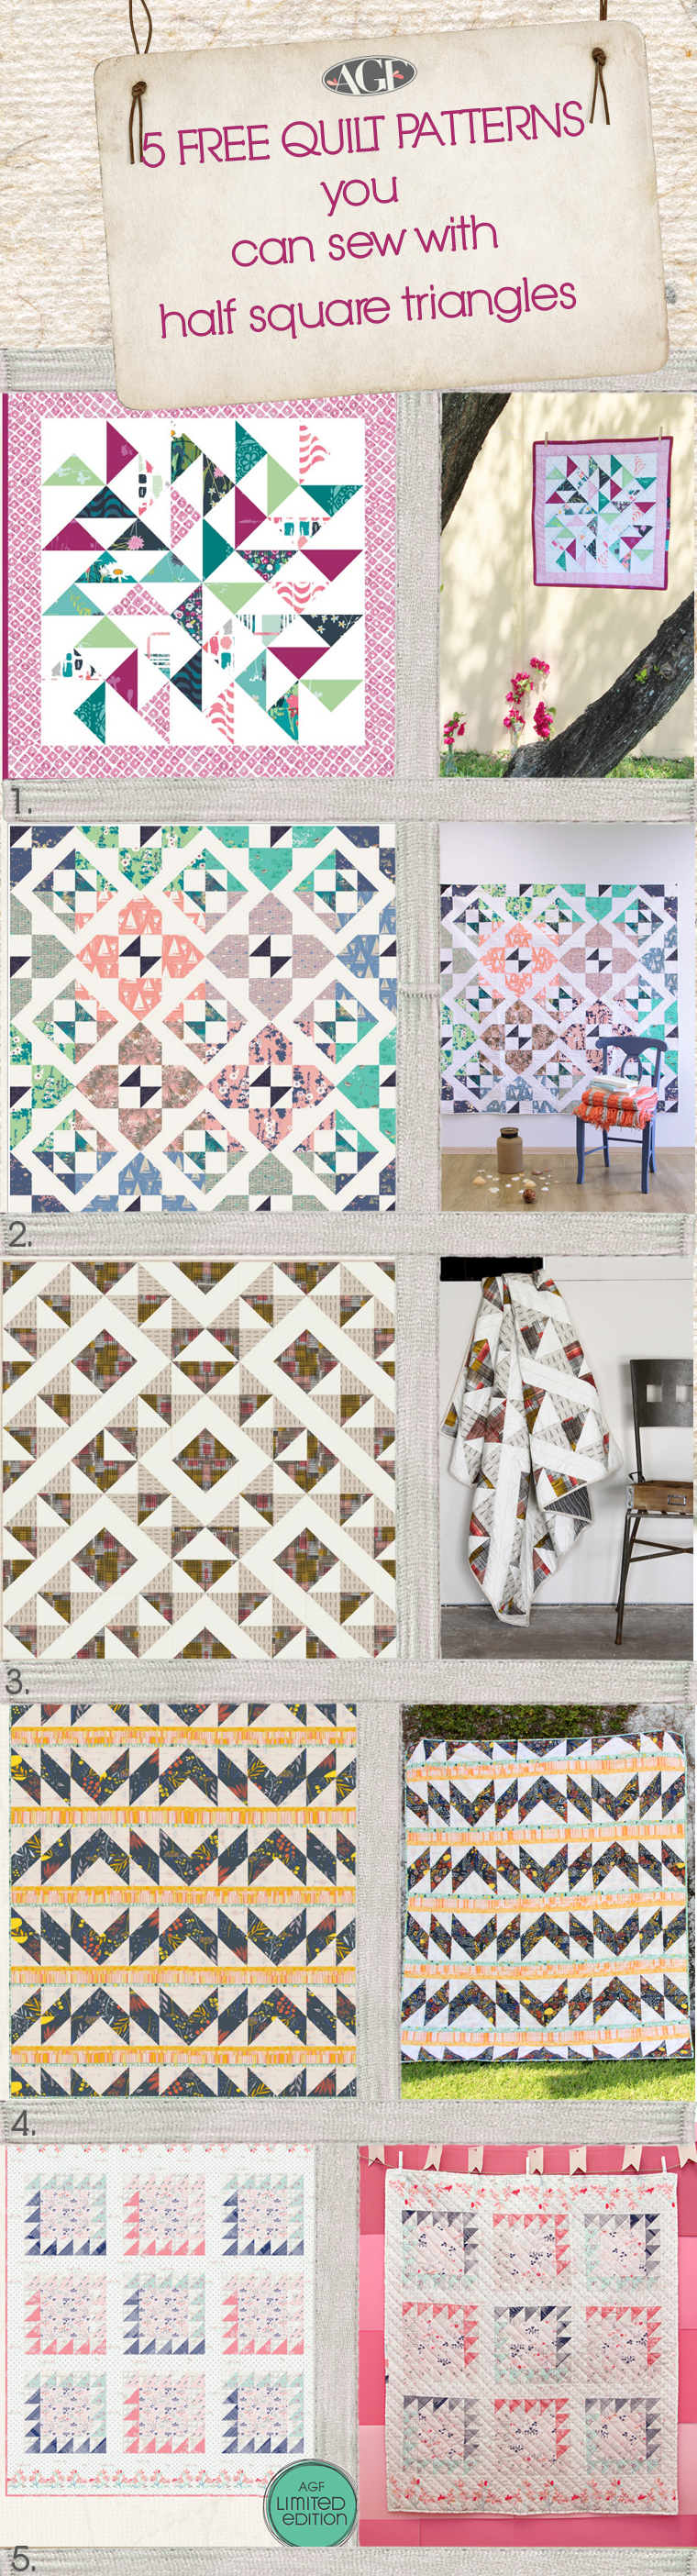 5 Free Quilt Patterns You Can Sew With Half Square Triangles Hst